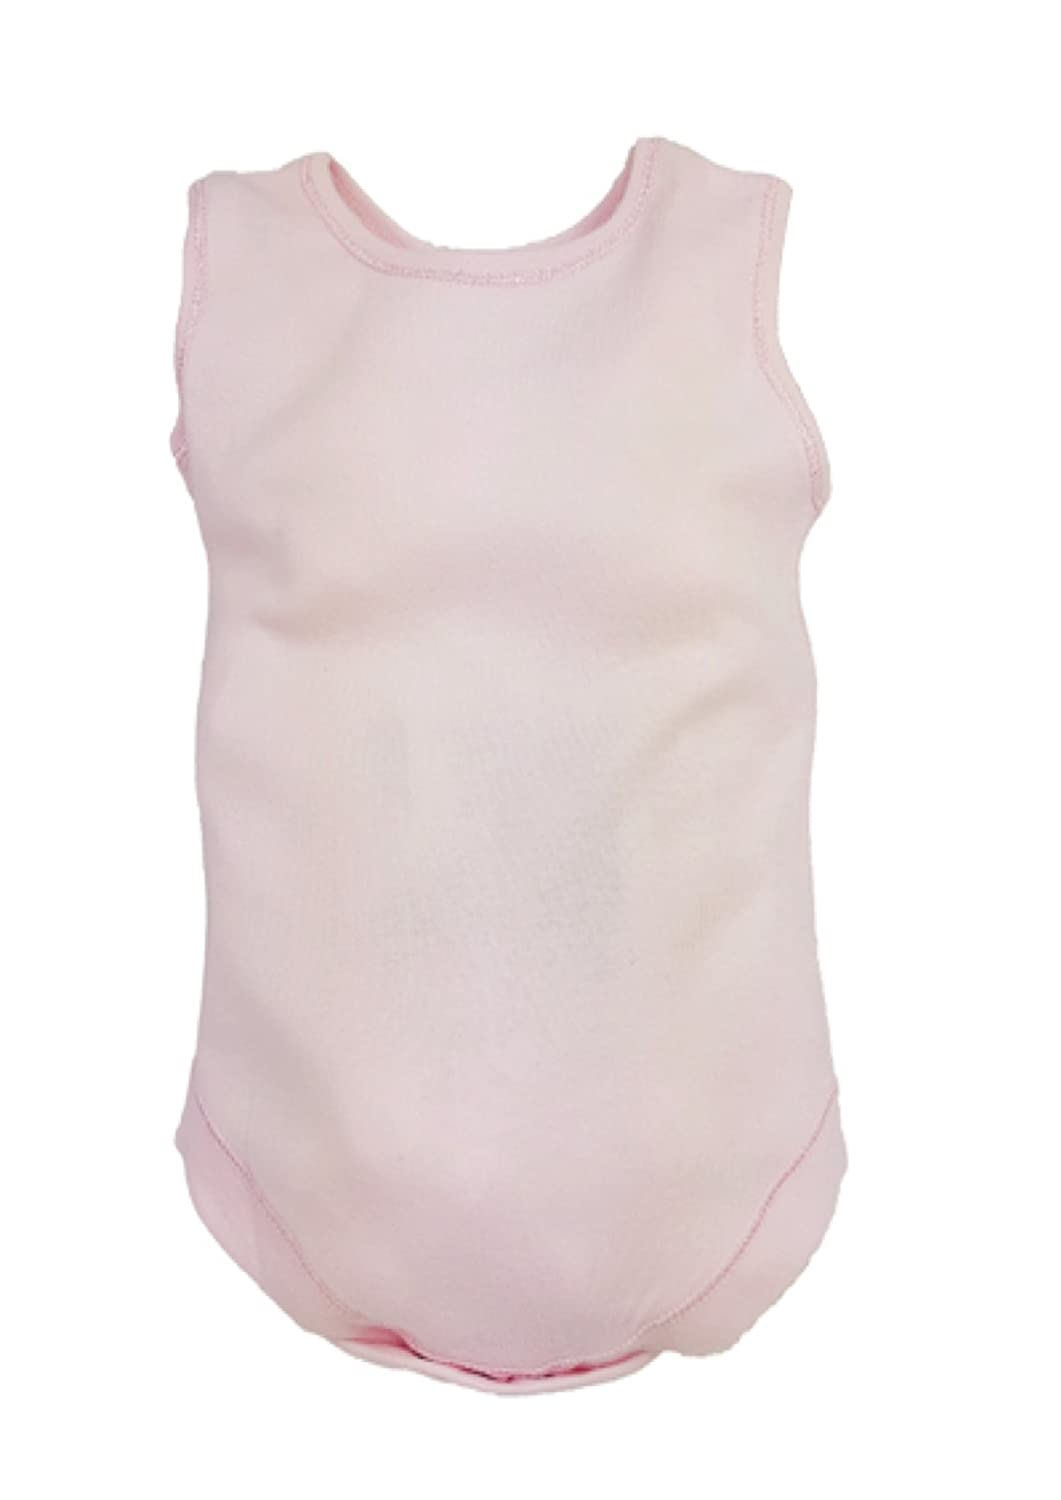 Mini munchkin 6 Rompers Pink Plain Sleeveless Body Vests Rompers